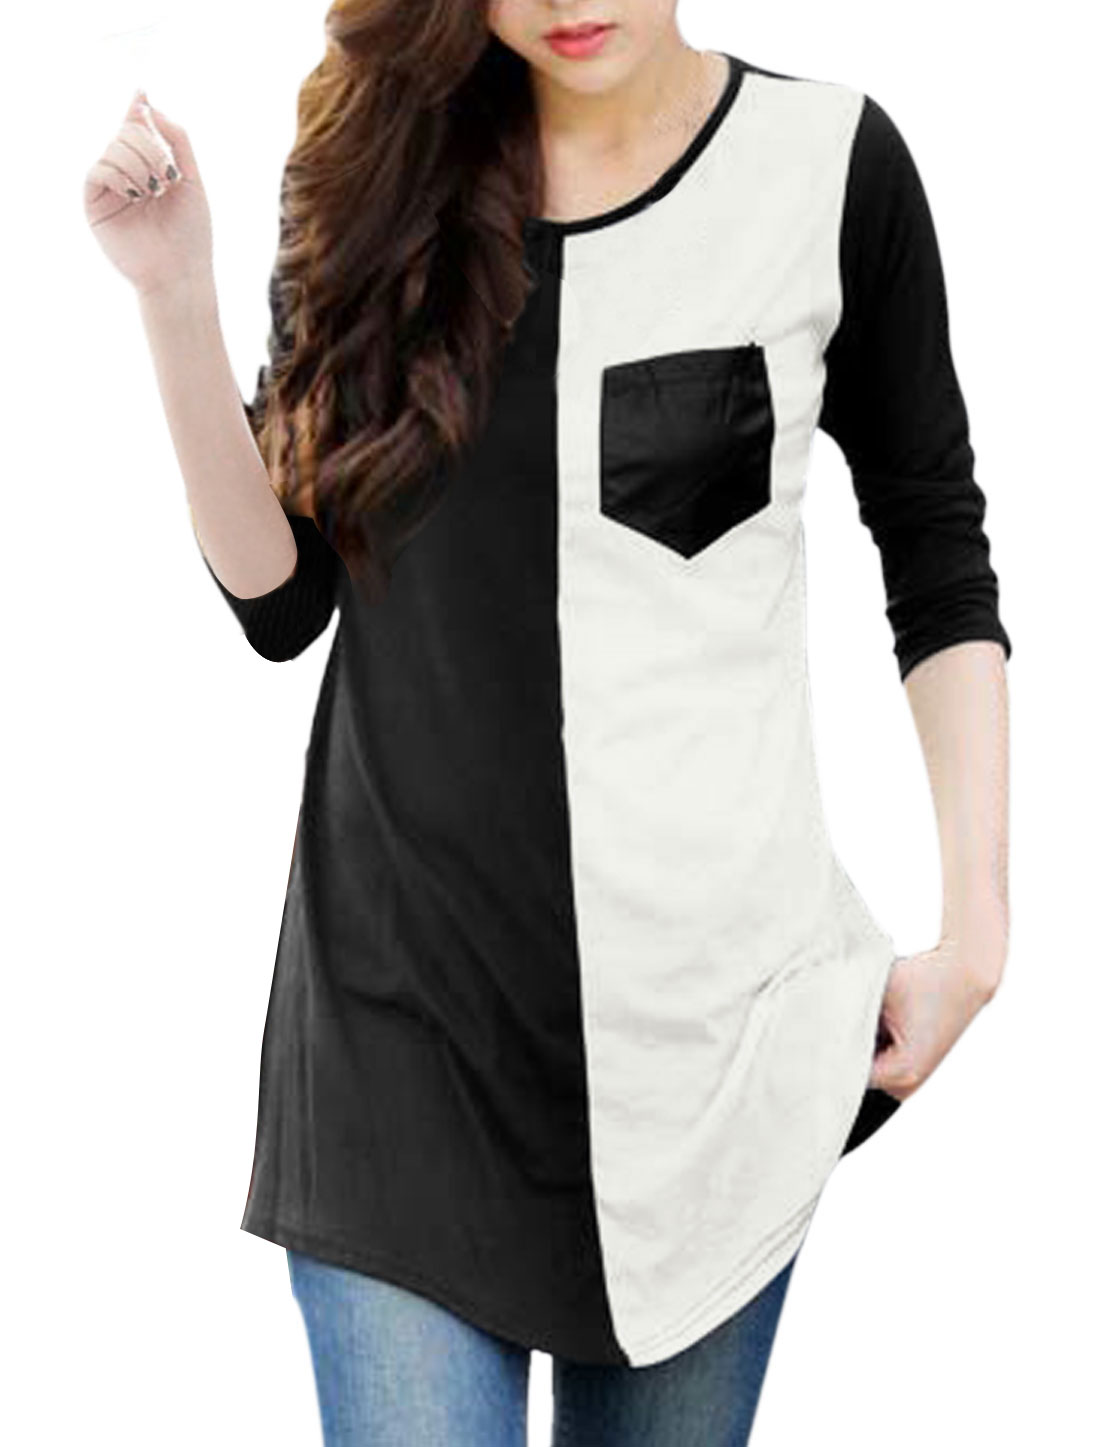 Women Black White Color Block One Bust Pocket Leisure Tunic Top S